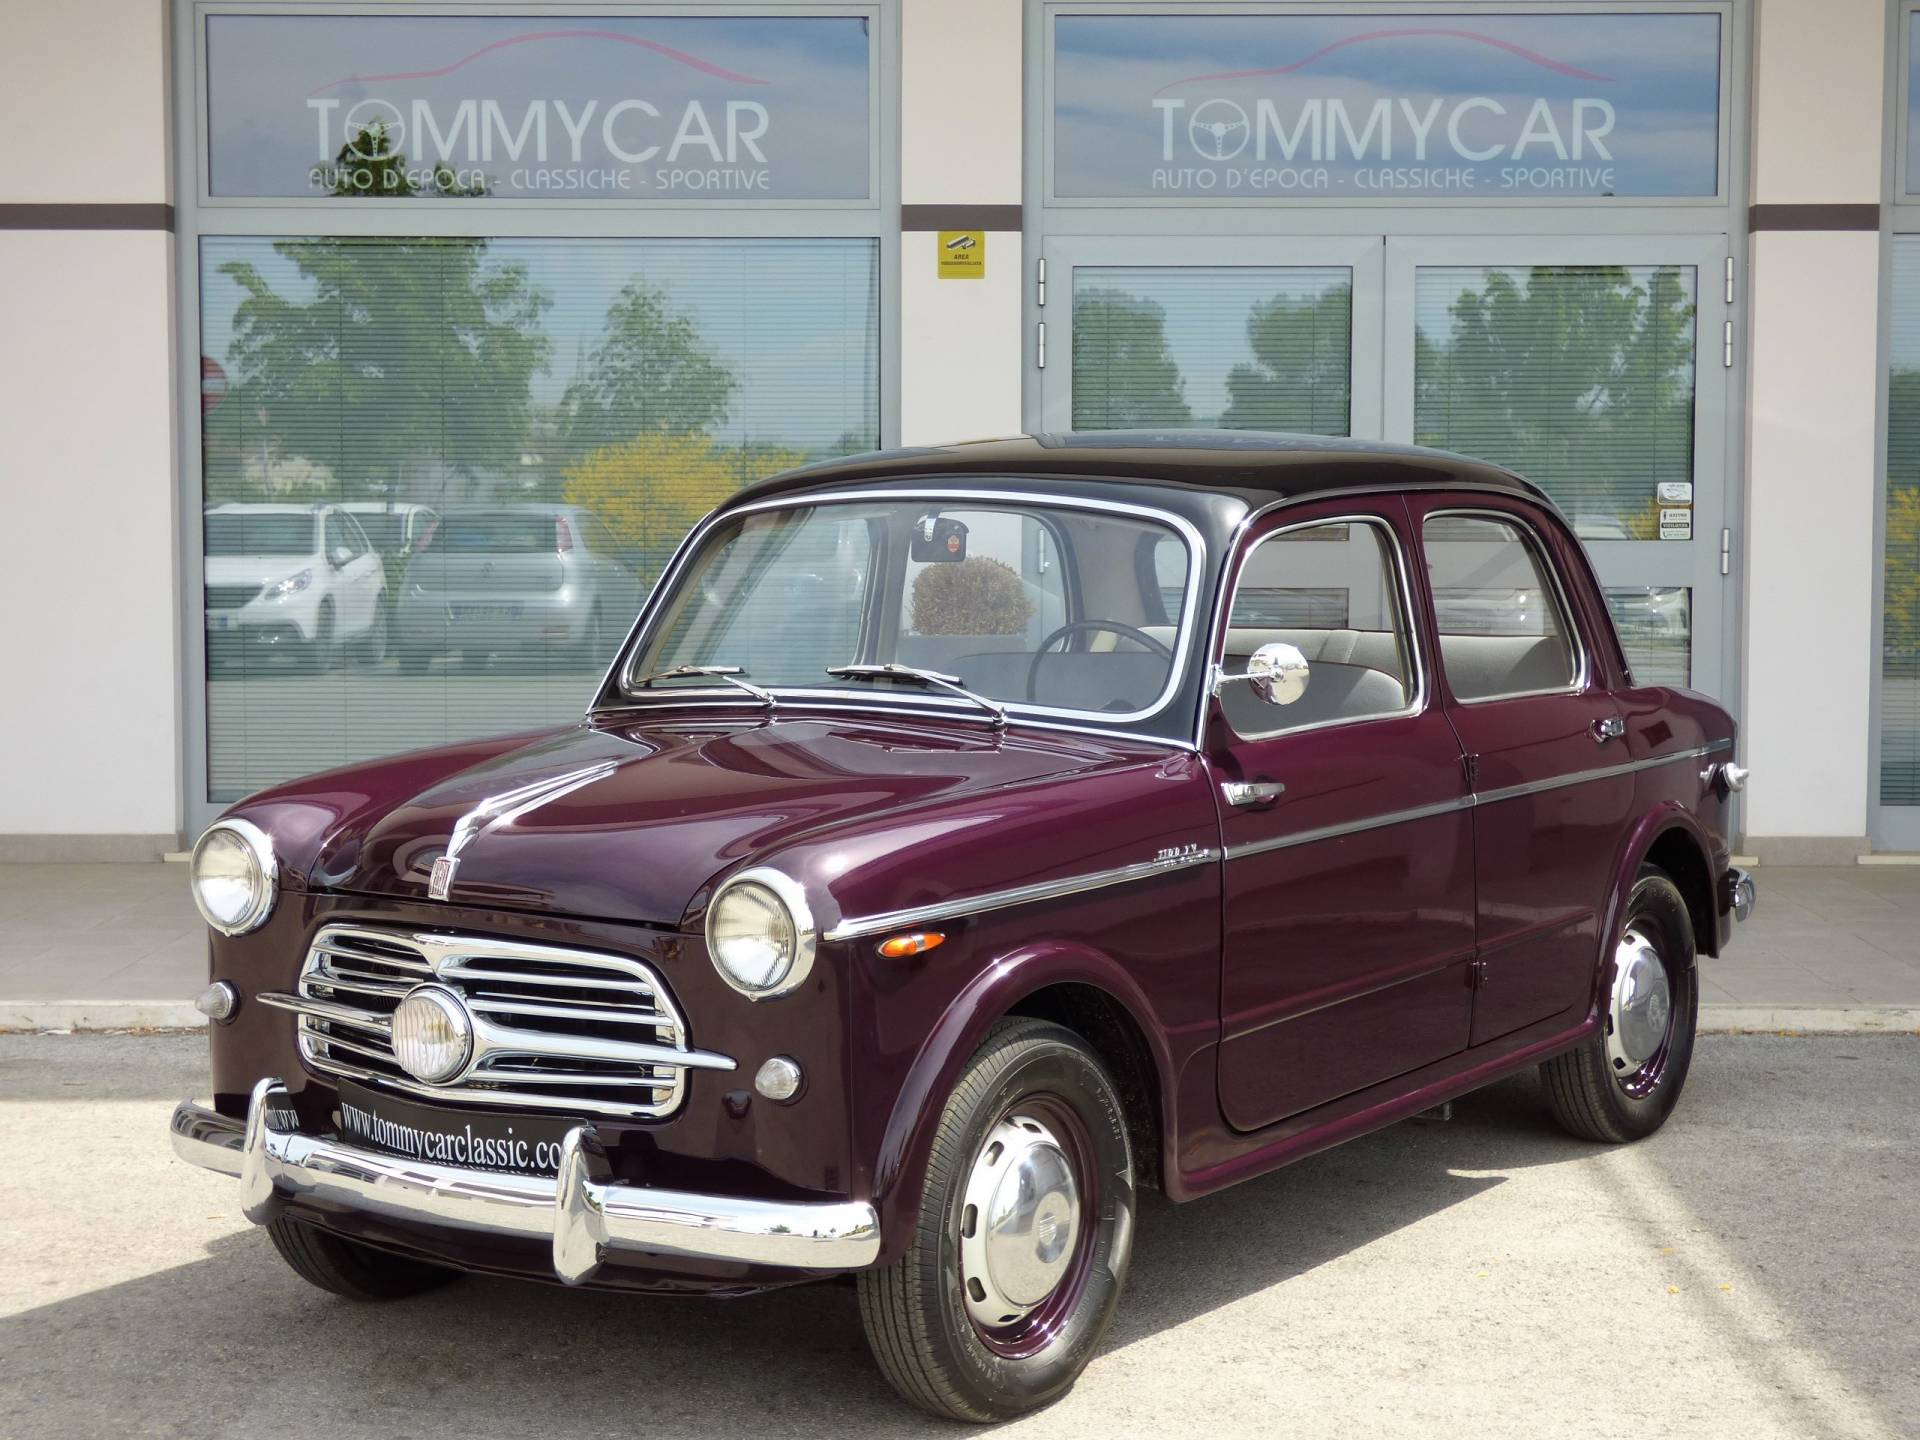 FIAT 1100-103 TV - Mille Miglia Eligible